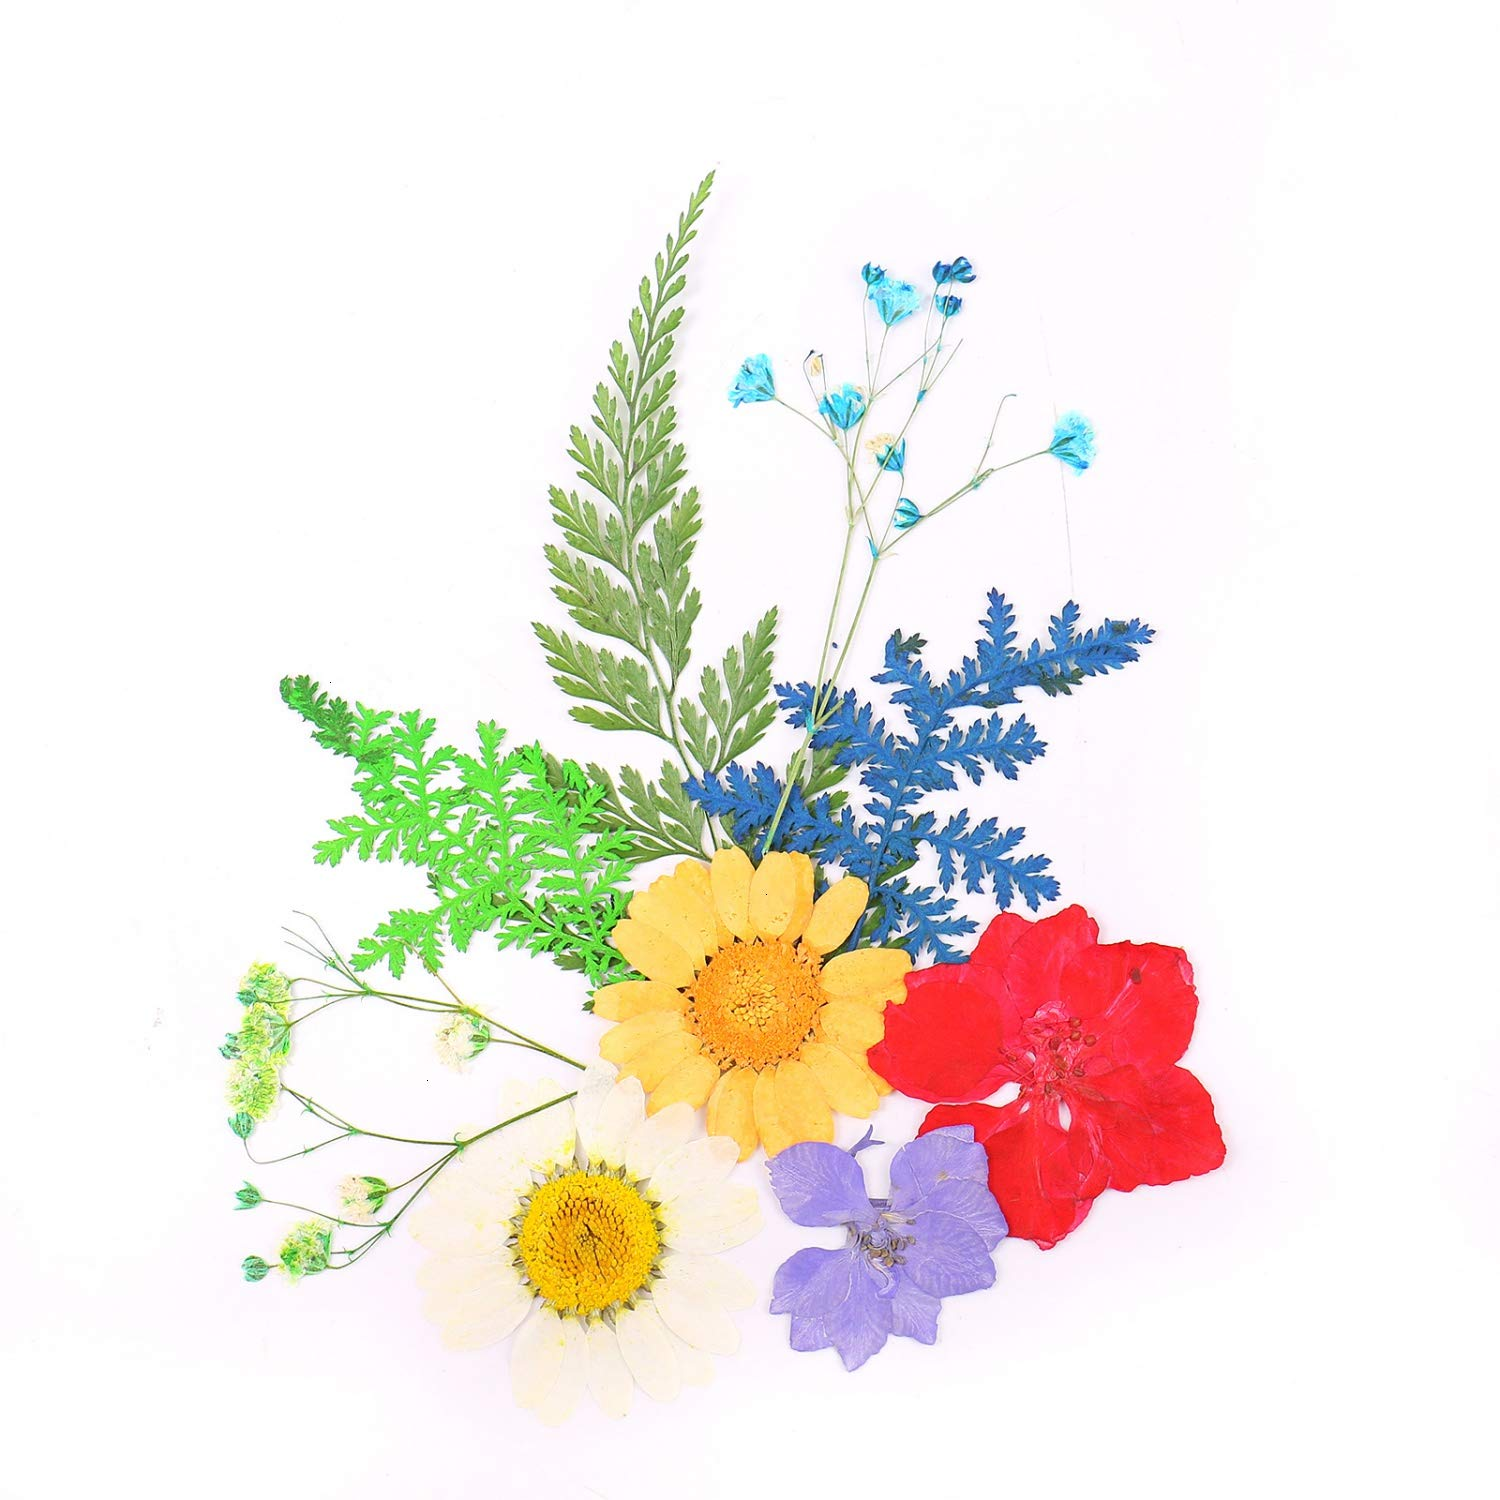 Pomeat Real Dried Pressed Flowers Assorted Colorful Pressed Dried Flowers for Resin Arts Crafts Jewelry Making